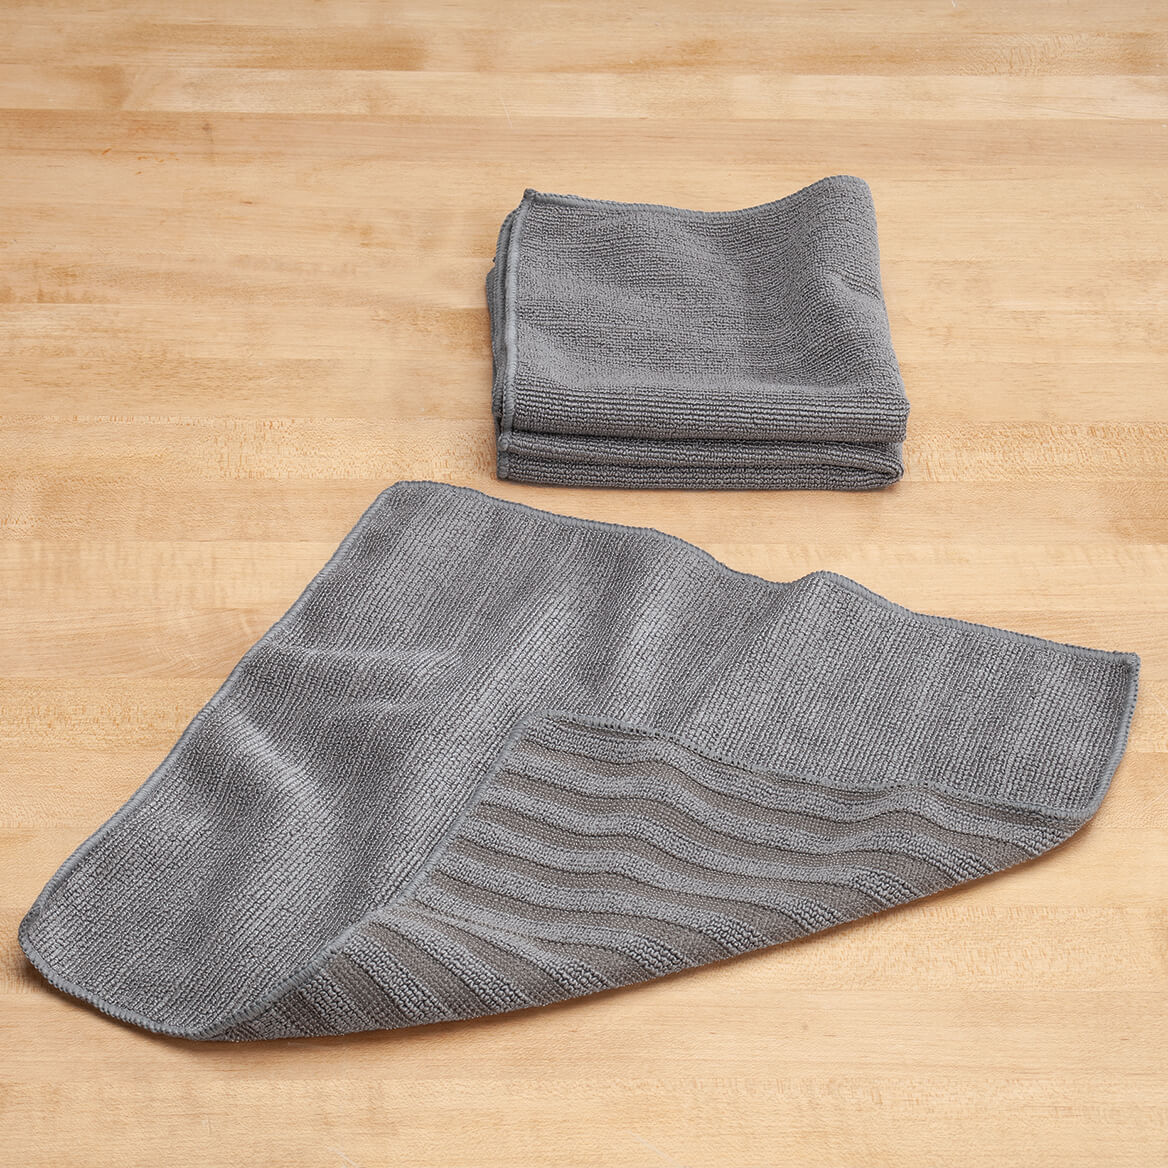 Stainless Steel Cleaning Cloths, Set of 3-370895